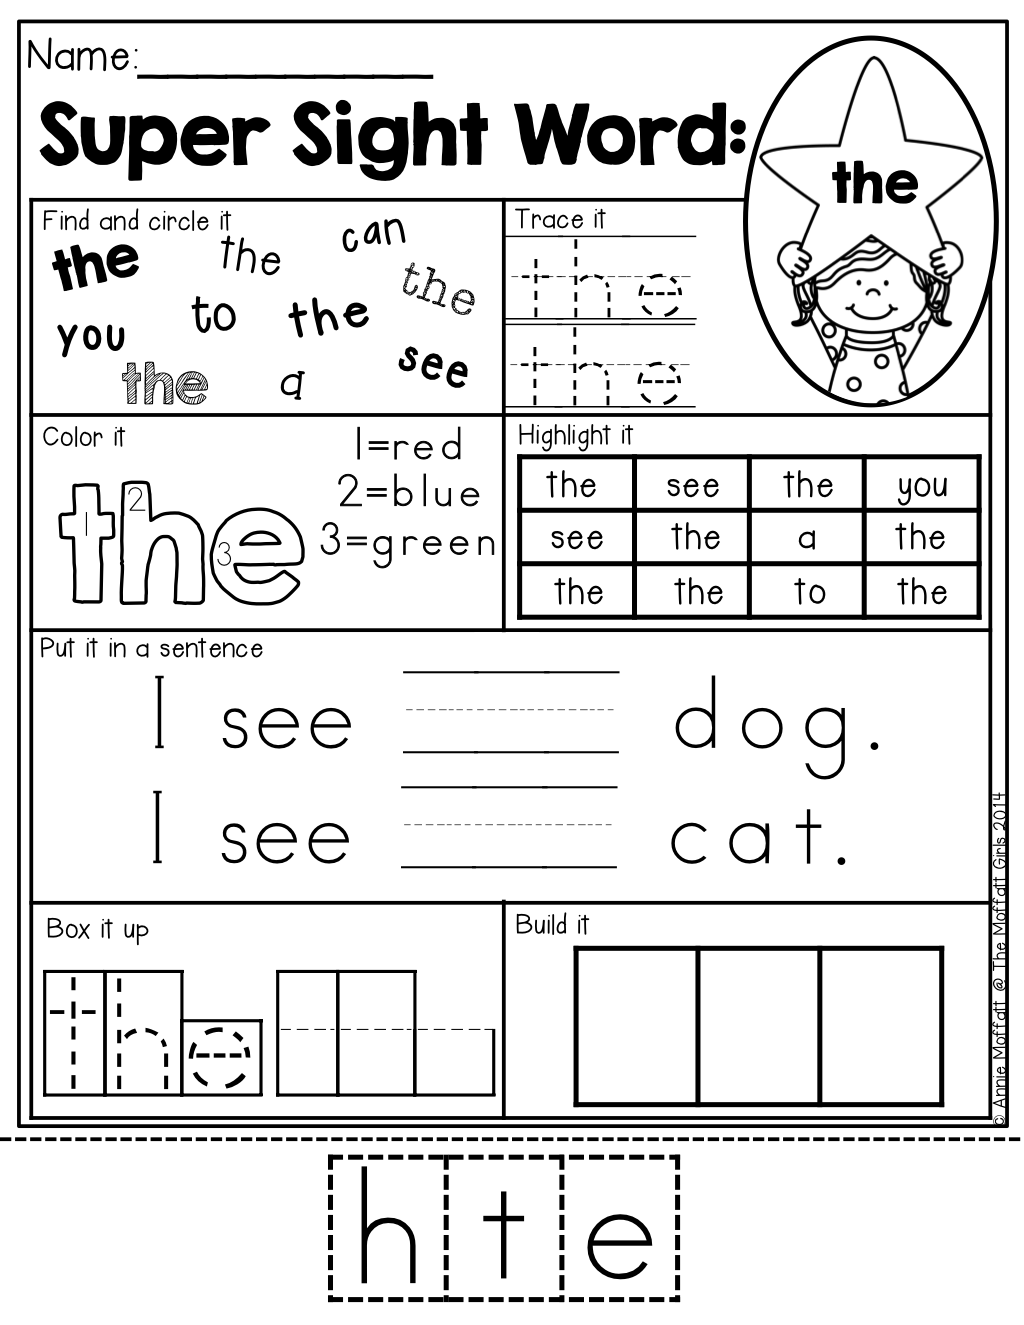 36 Best Sight Word Fun images | Learning, Reading, Sight ...